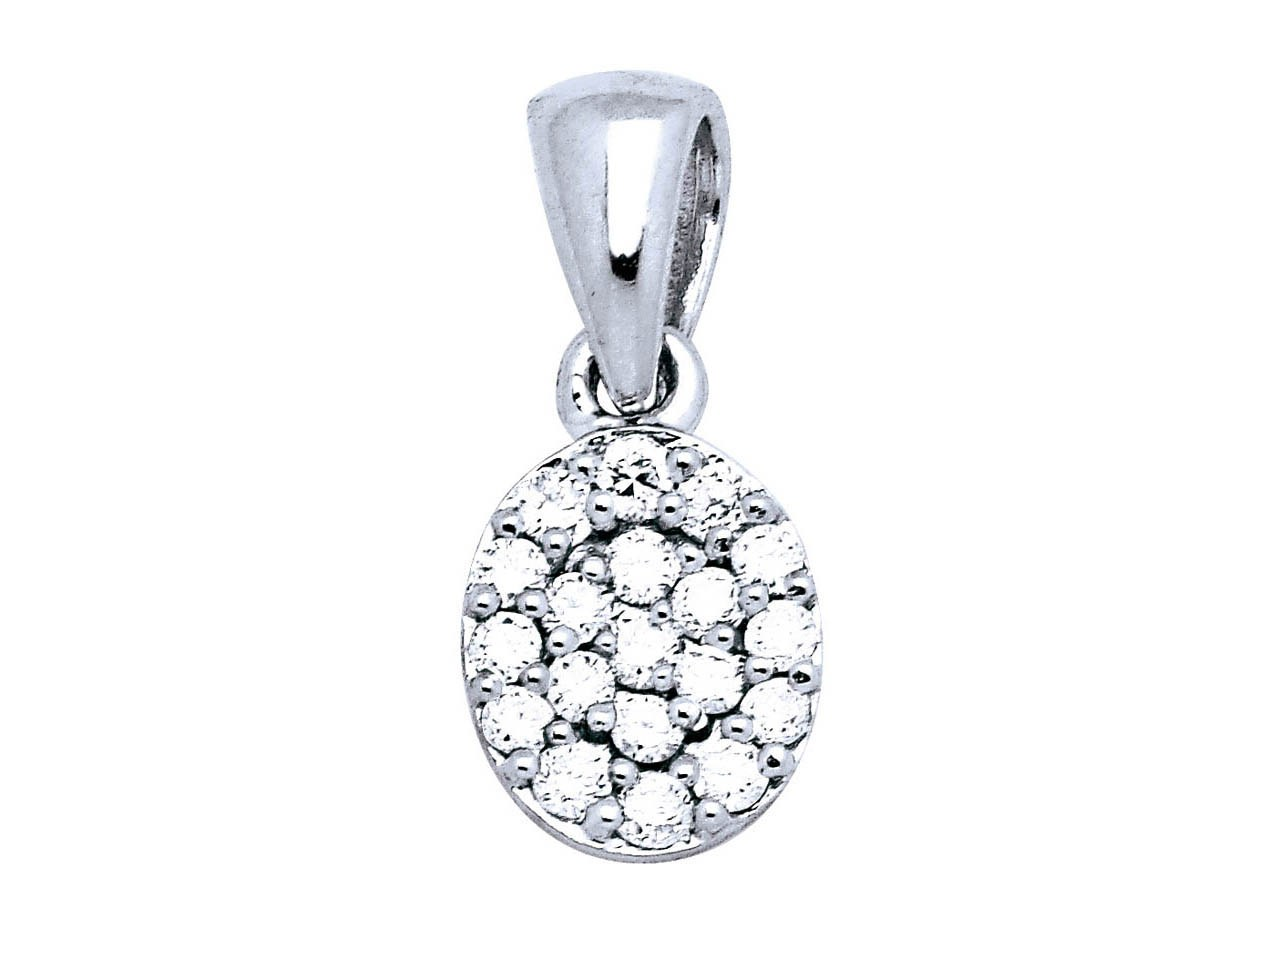 Pendentif ovale Or gris, pavage diamants 0,18 ct